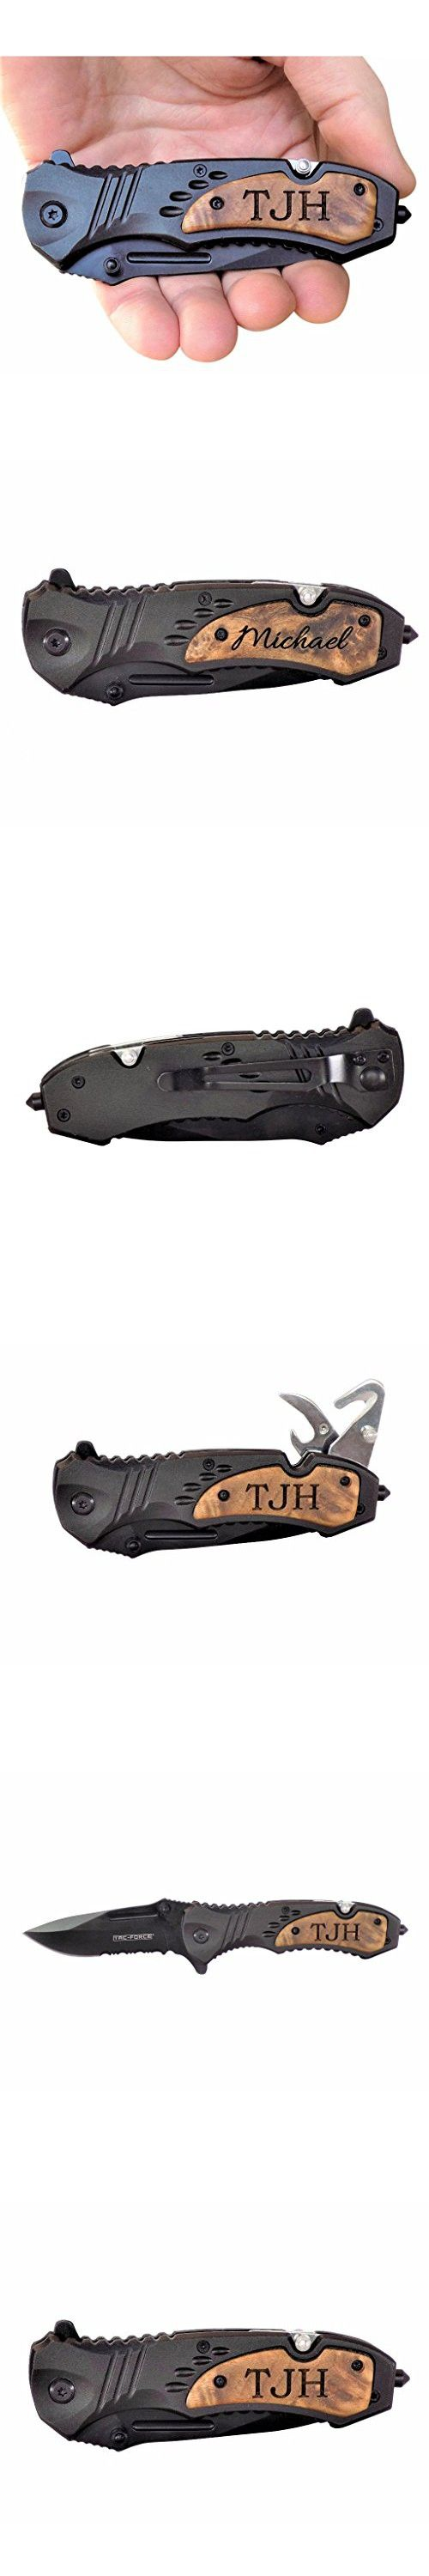 Tac-Force Speedster TF606WS Assisted Opening Tactical Pocket Knife, Groomsmen Gifts, Laser Engraved Knife, Father's Day Gifts, Anniversary Gifts For Men, 5th Anniversary Gifts